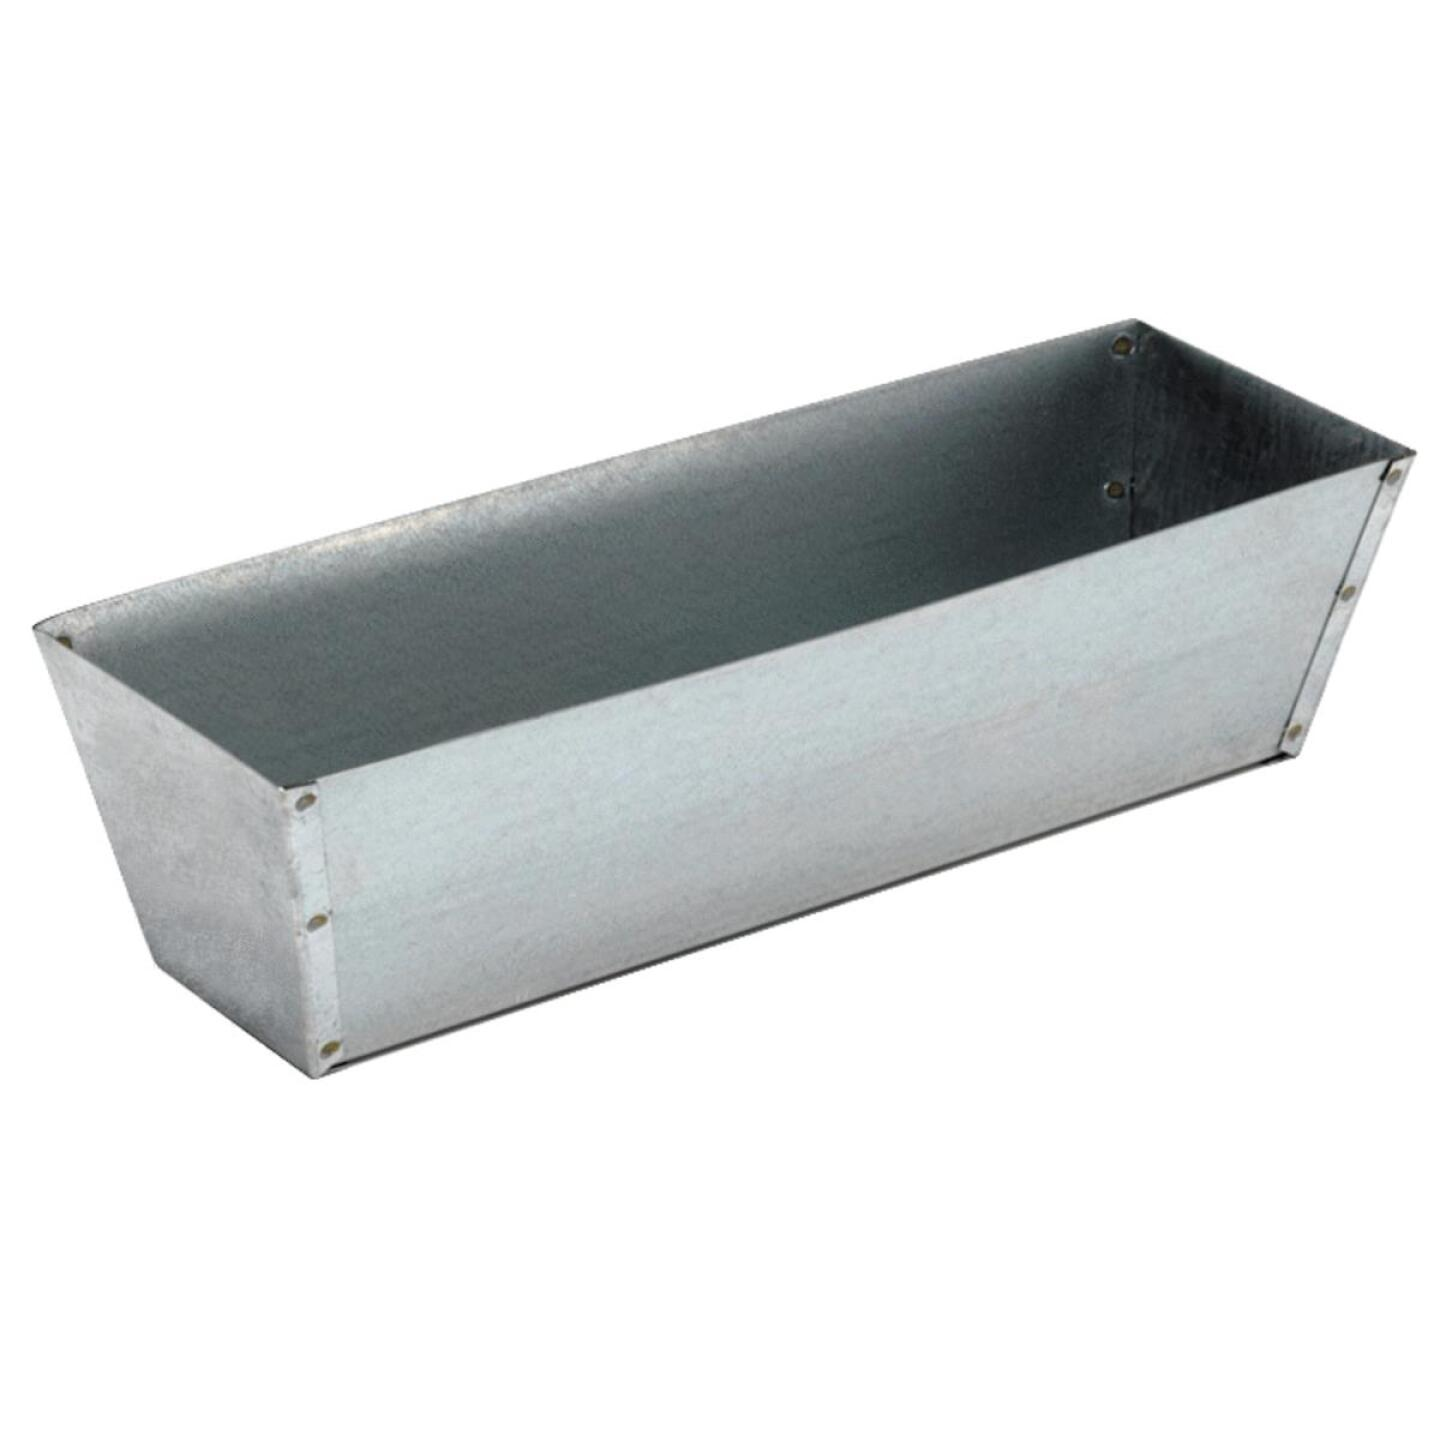 Marshalltown 14 In. Galvanized Steel Mud Pan Image 1